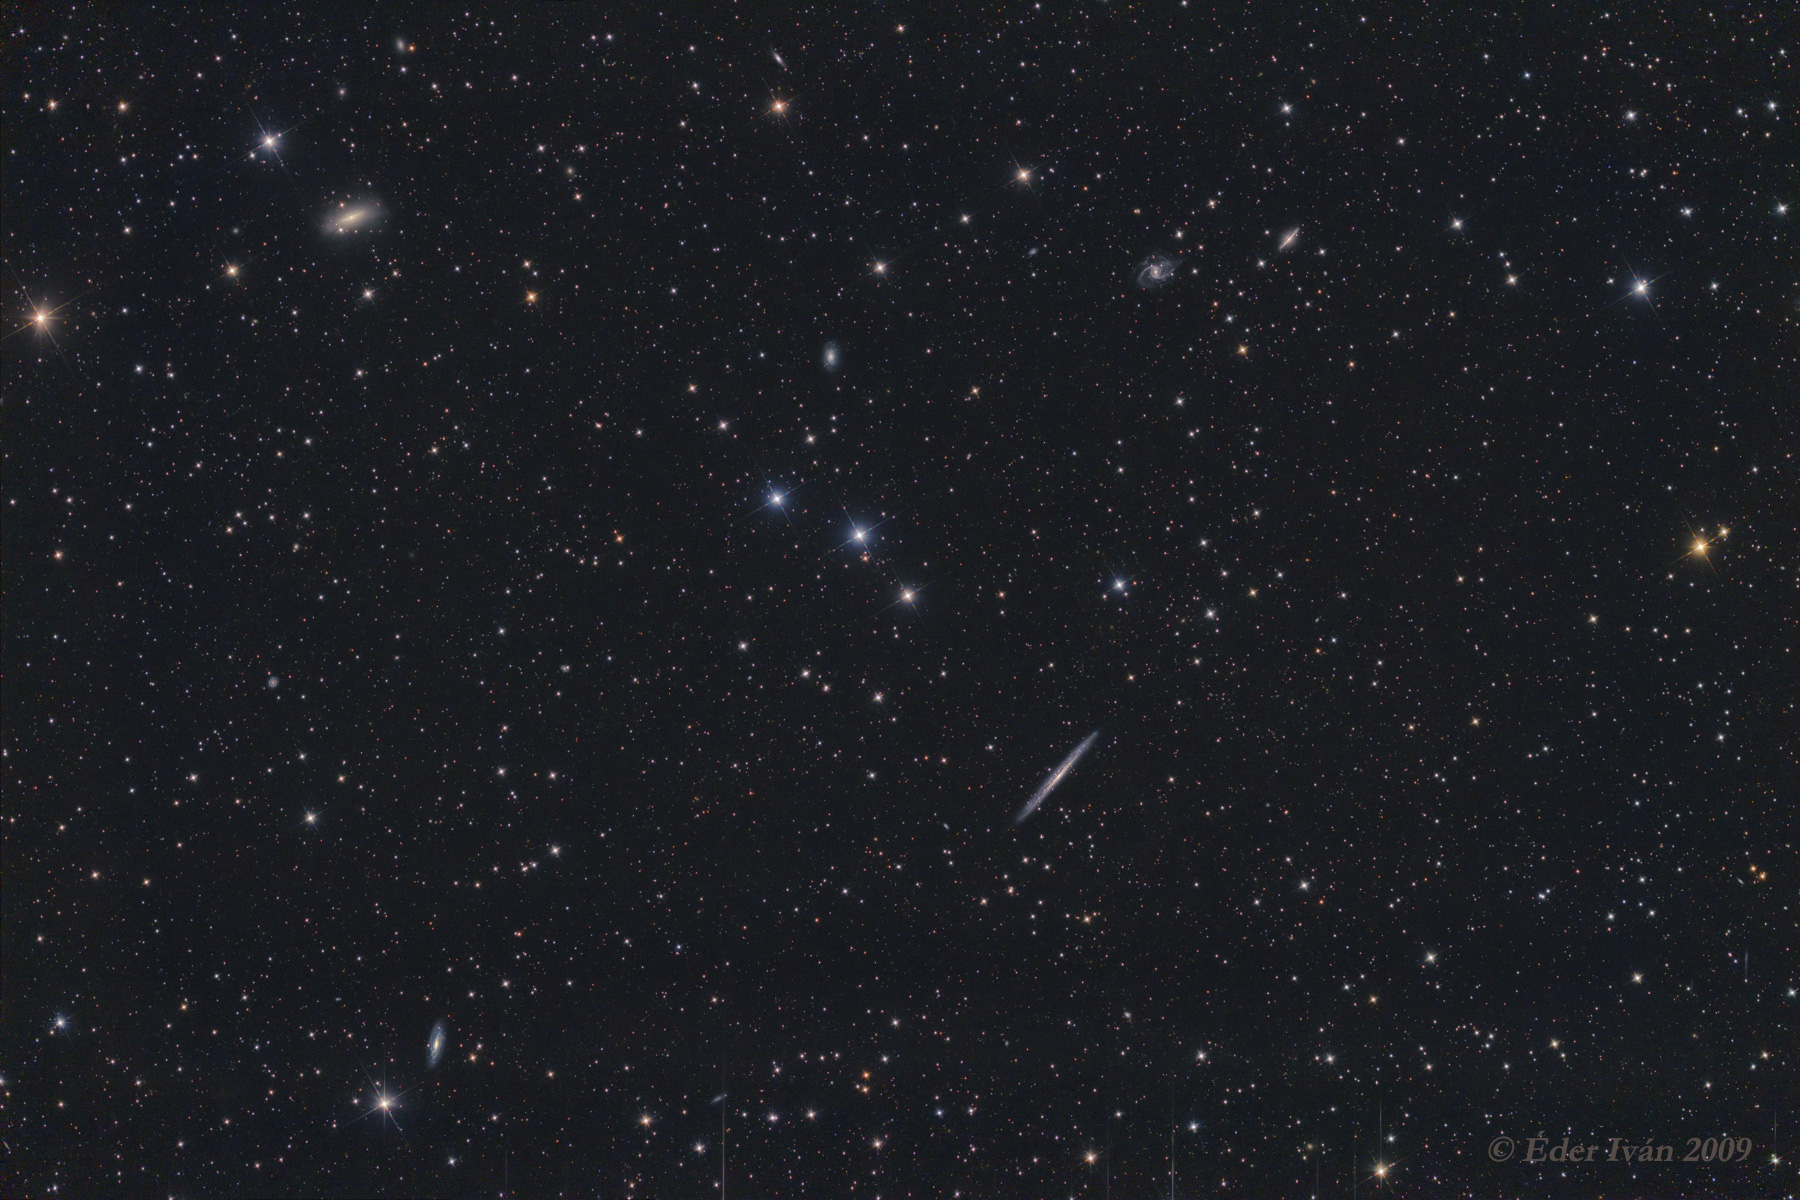 NGC 5907 and nearby galaxies